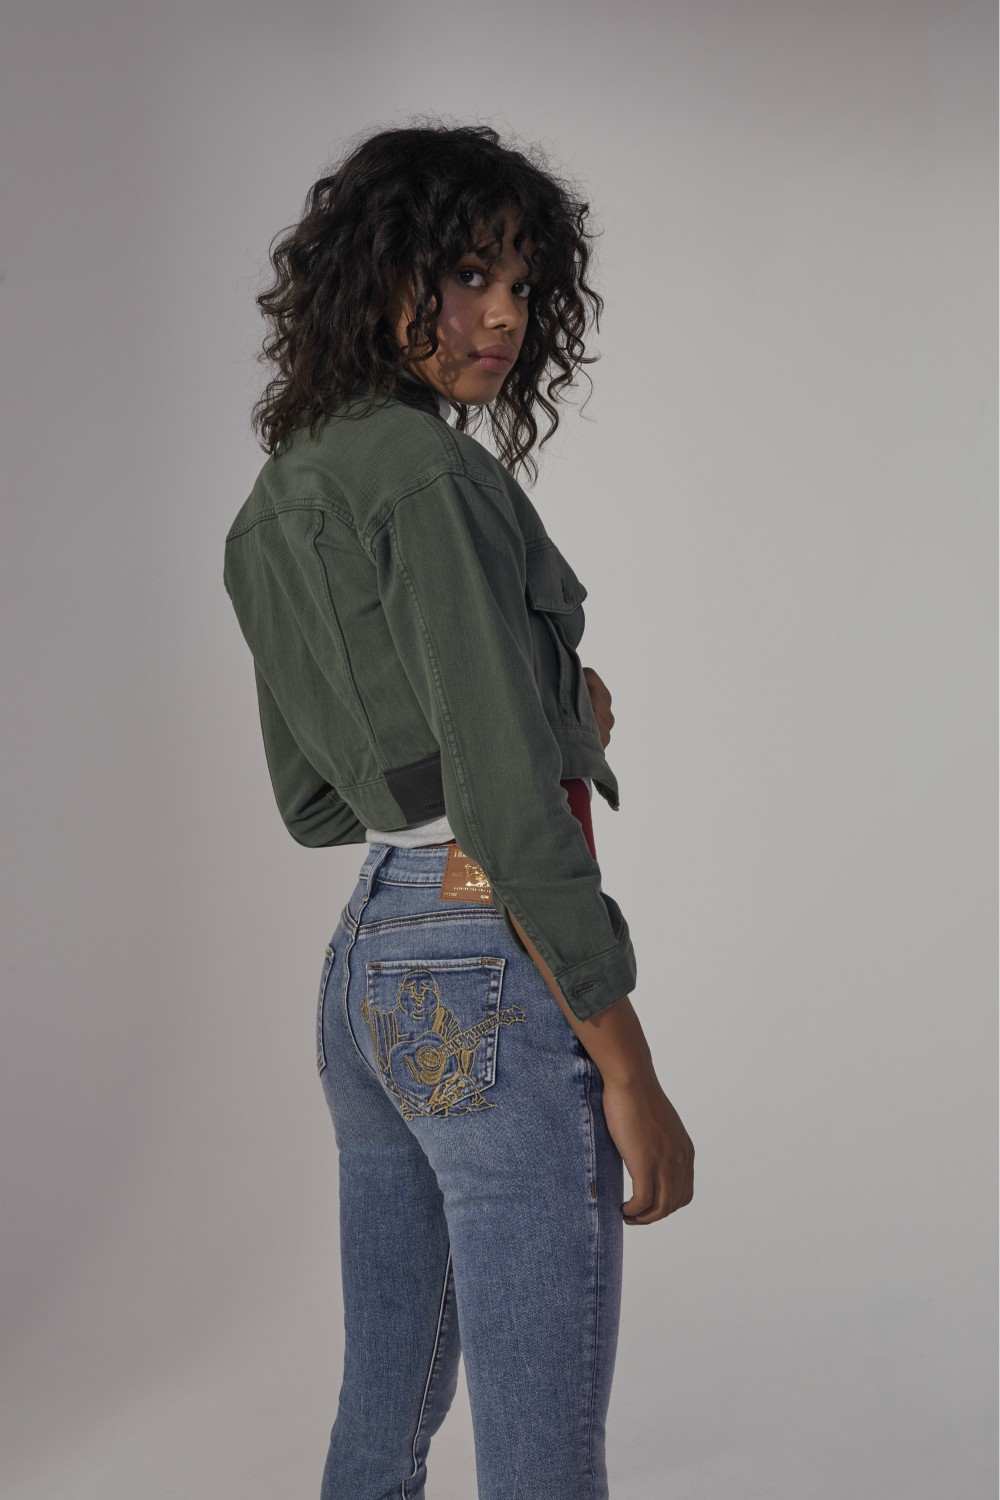 True Religion's latest denim collection focuses on elevating the brand to its former glory.